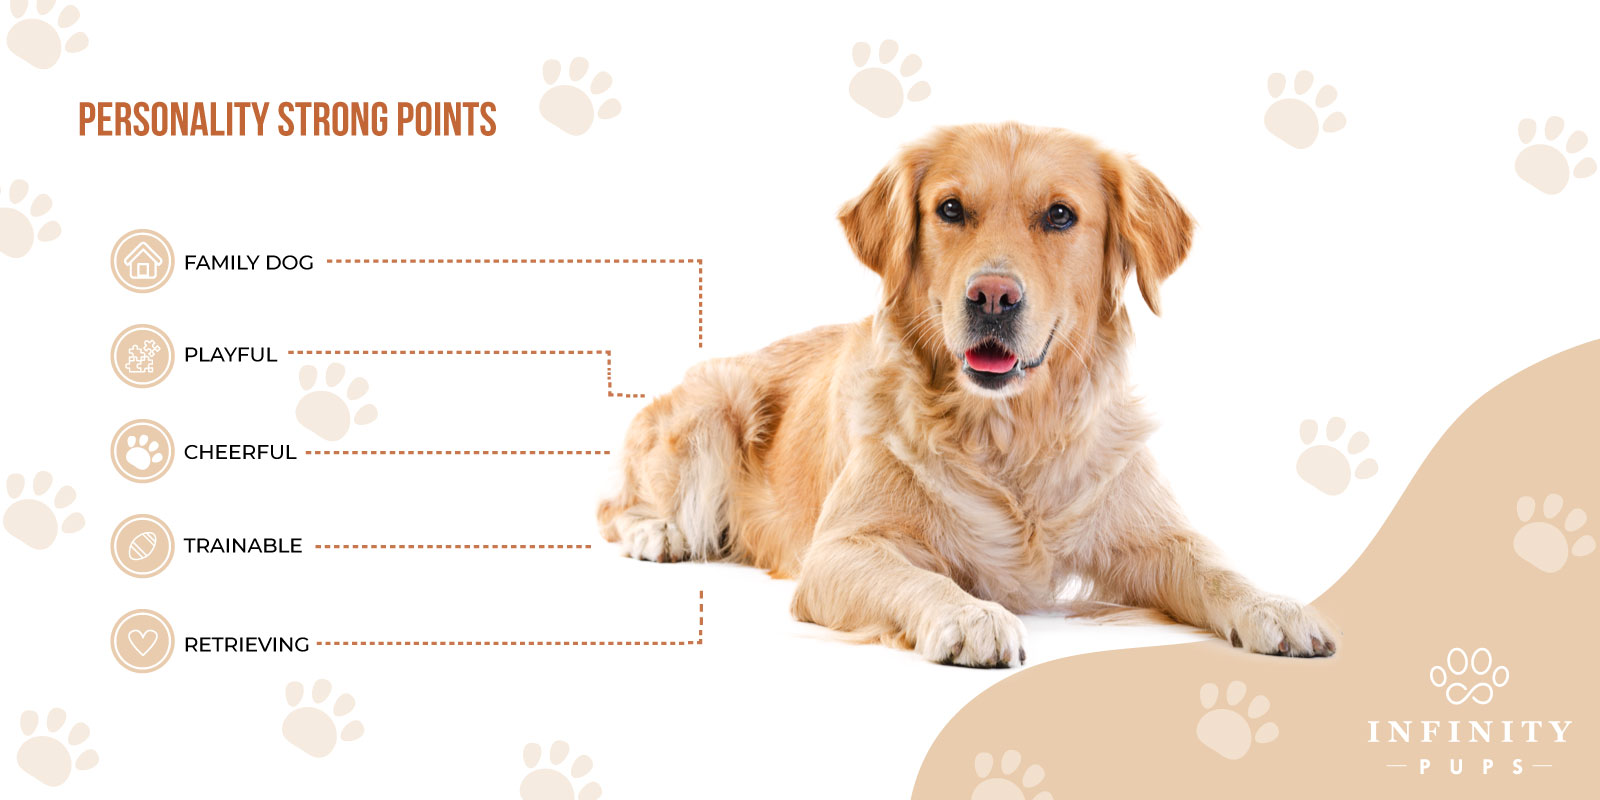 golden retriever personality strong points